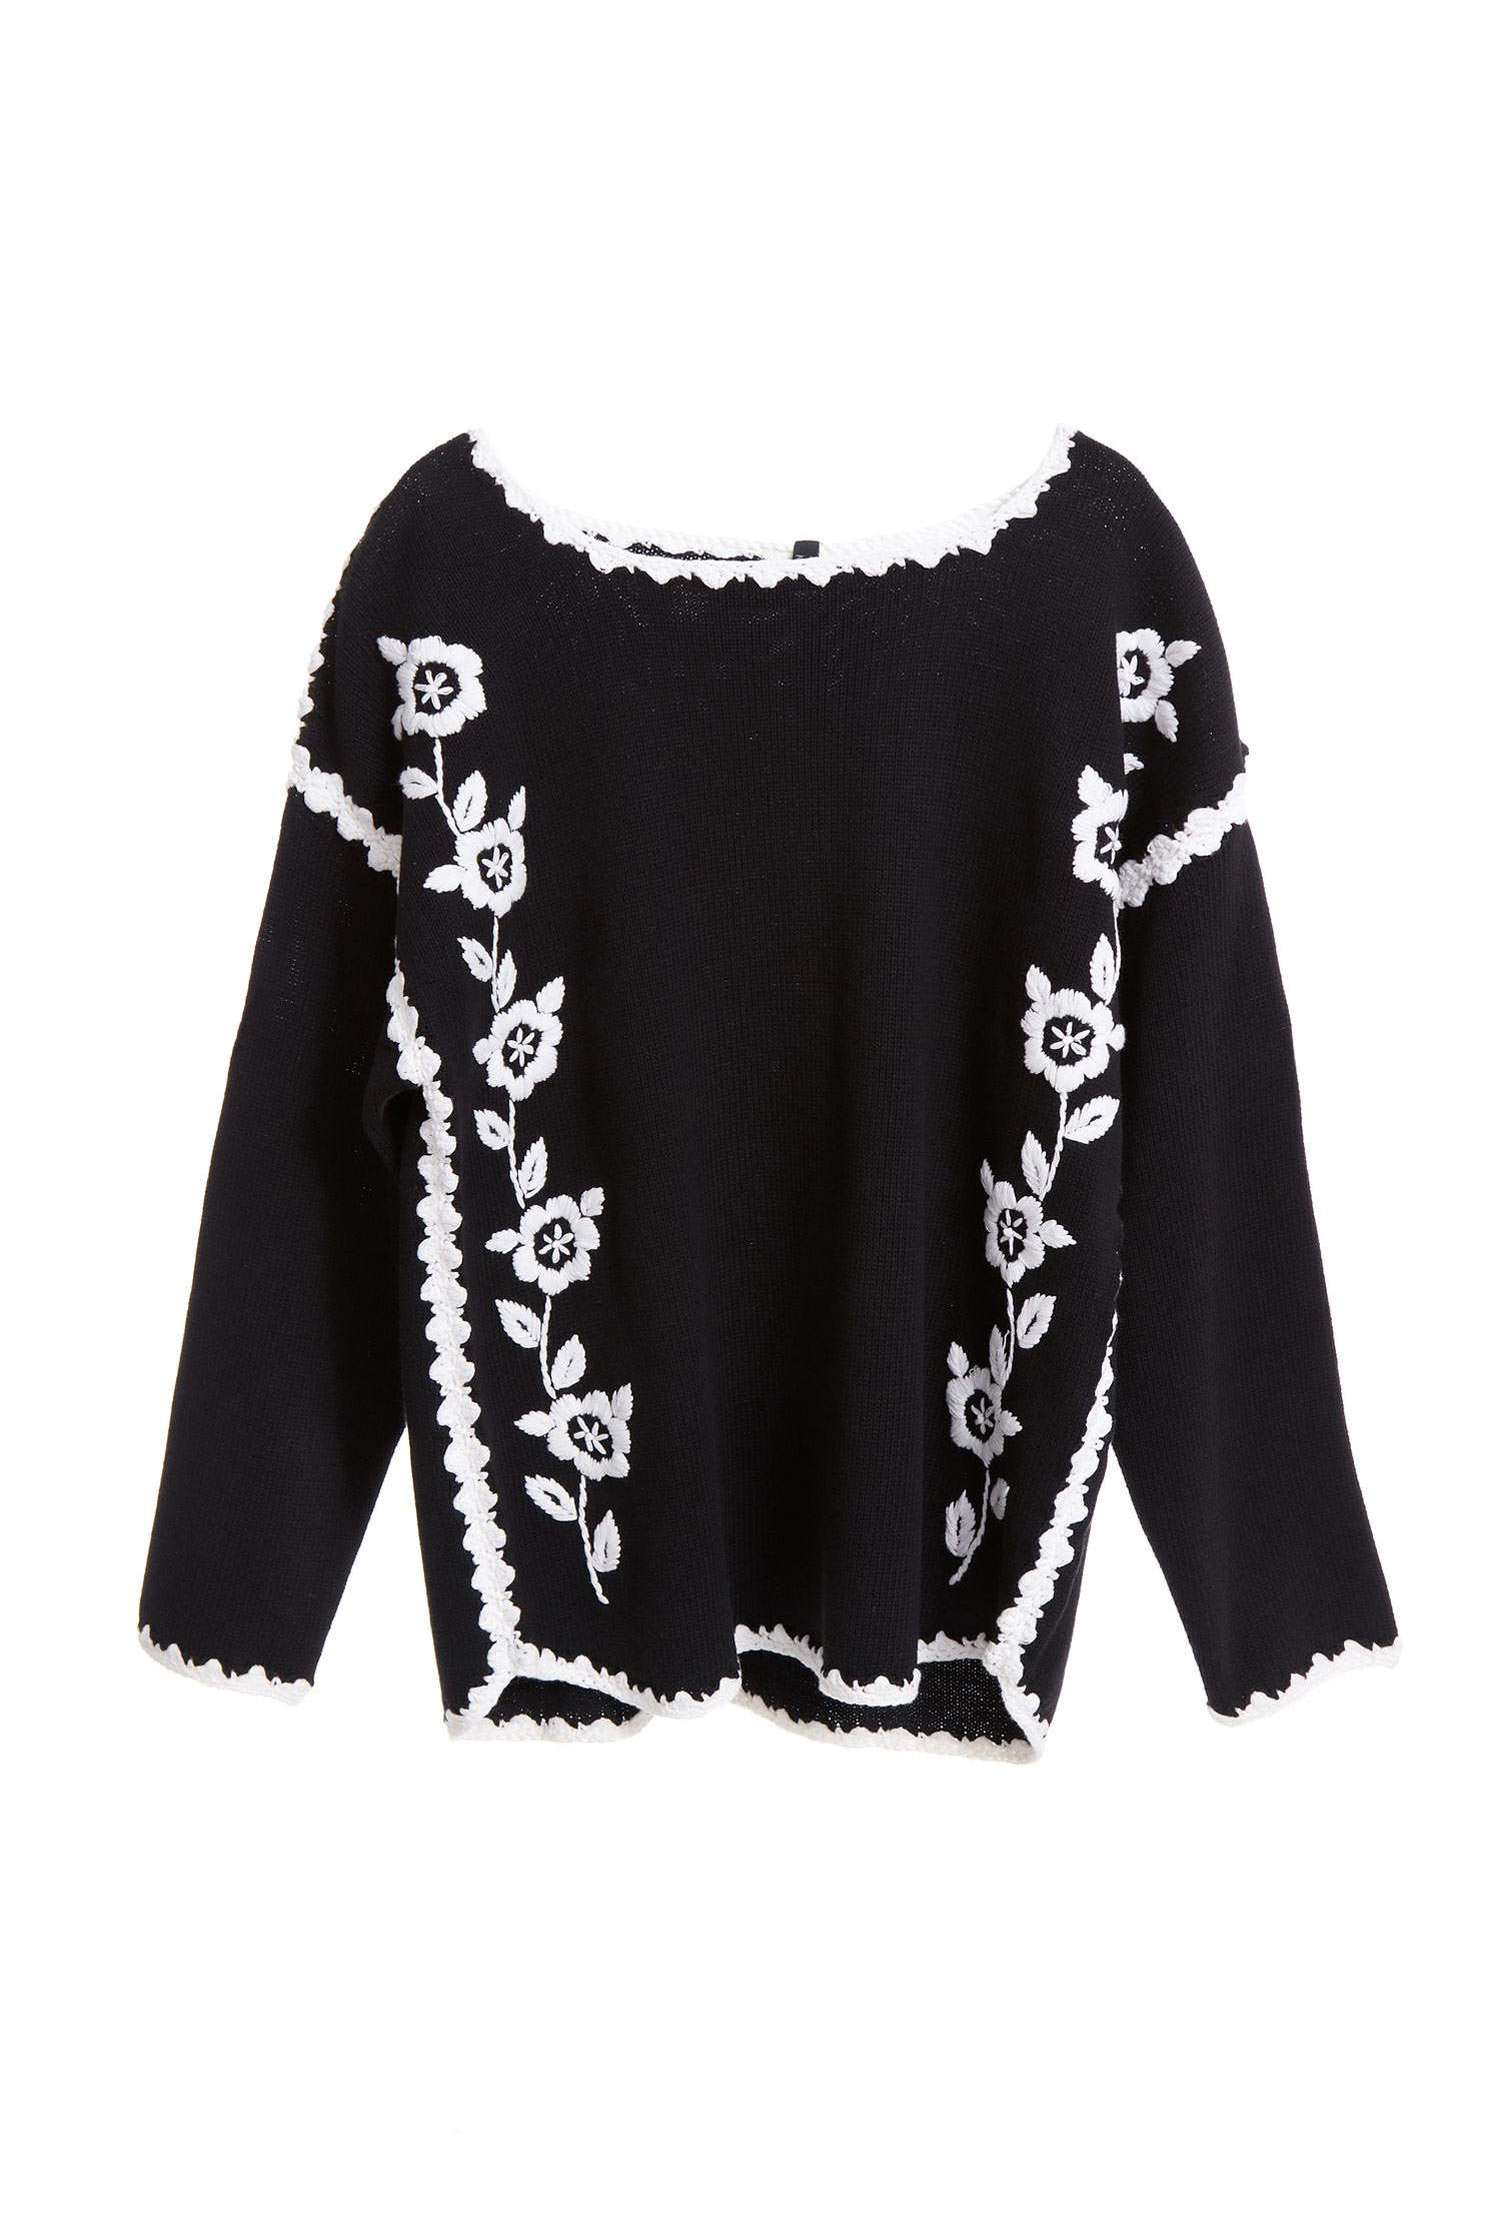 Hand knitted jacquard top